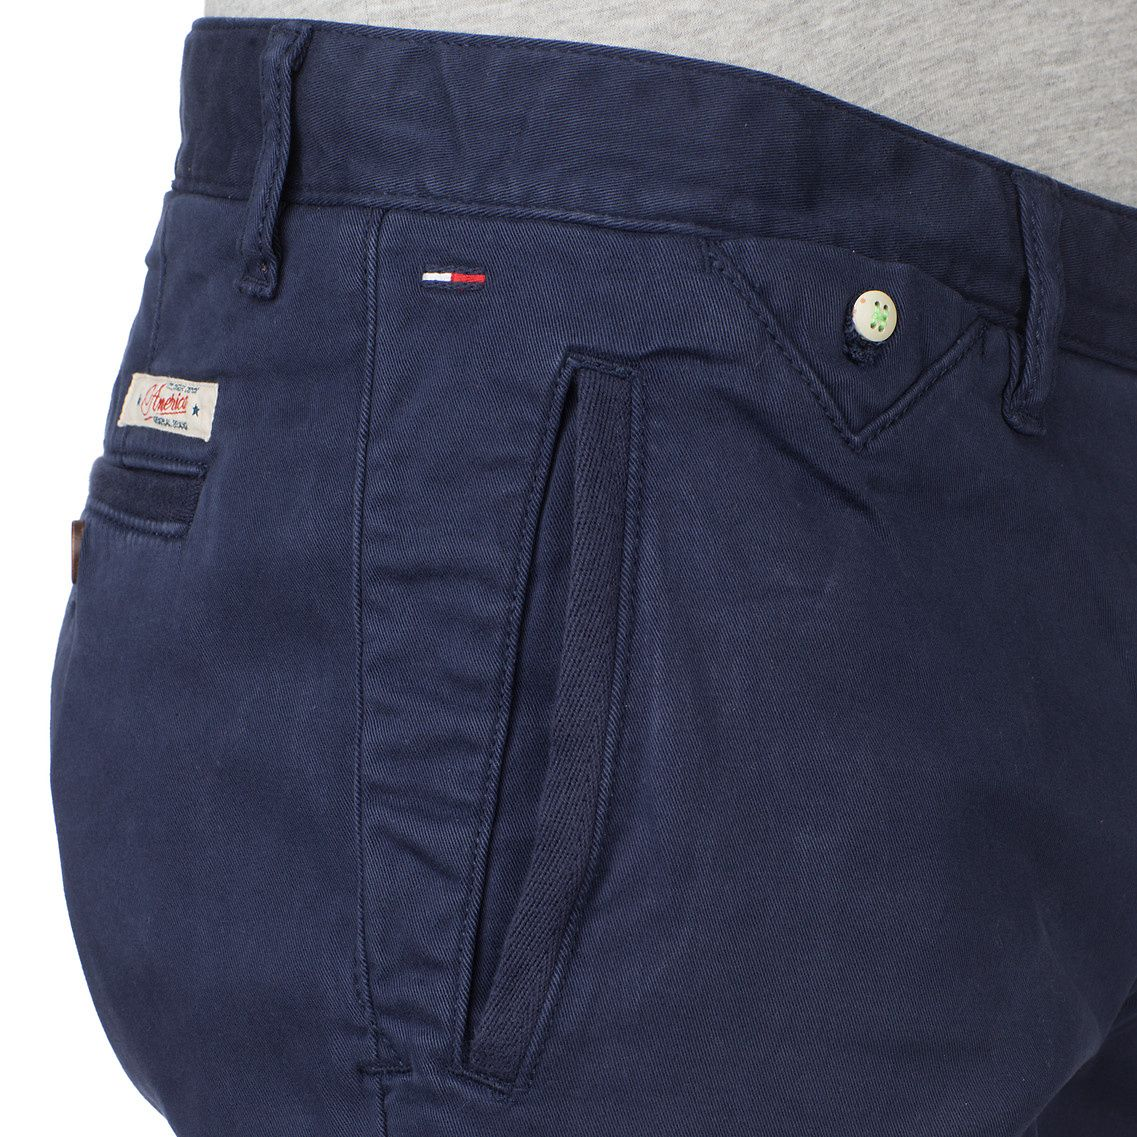 46388e23b Ferry Slim Fit Pant | Official Tommy Hilfiger Shop | Tommy Hilfiger ...